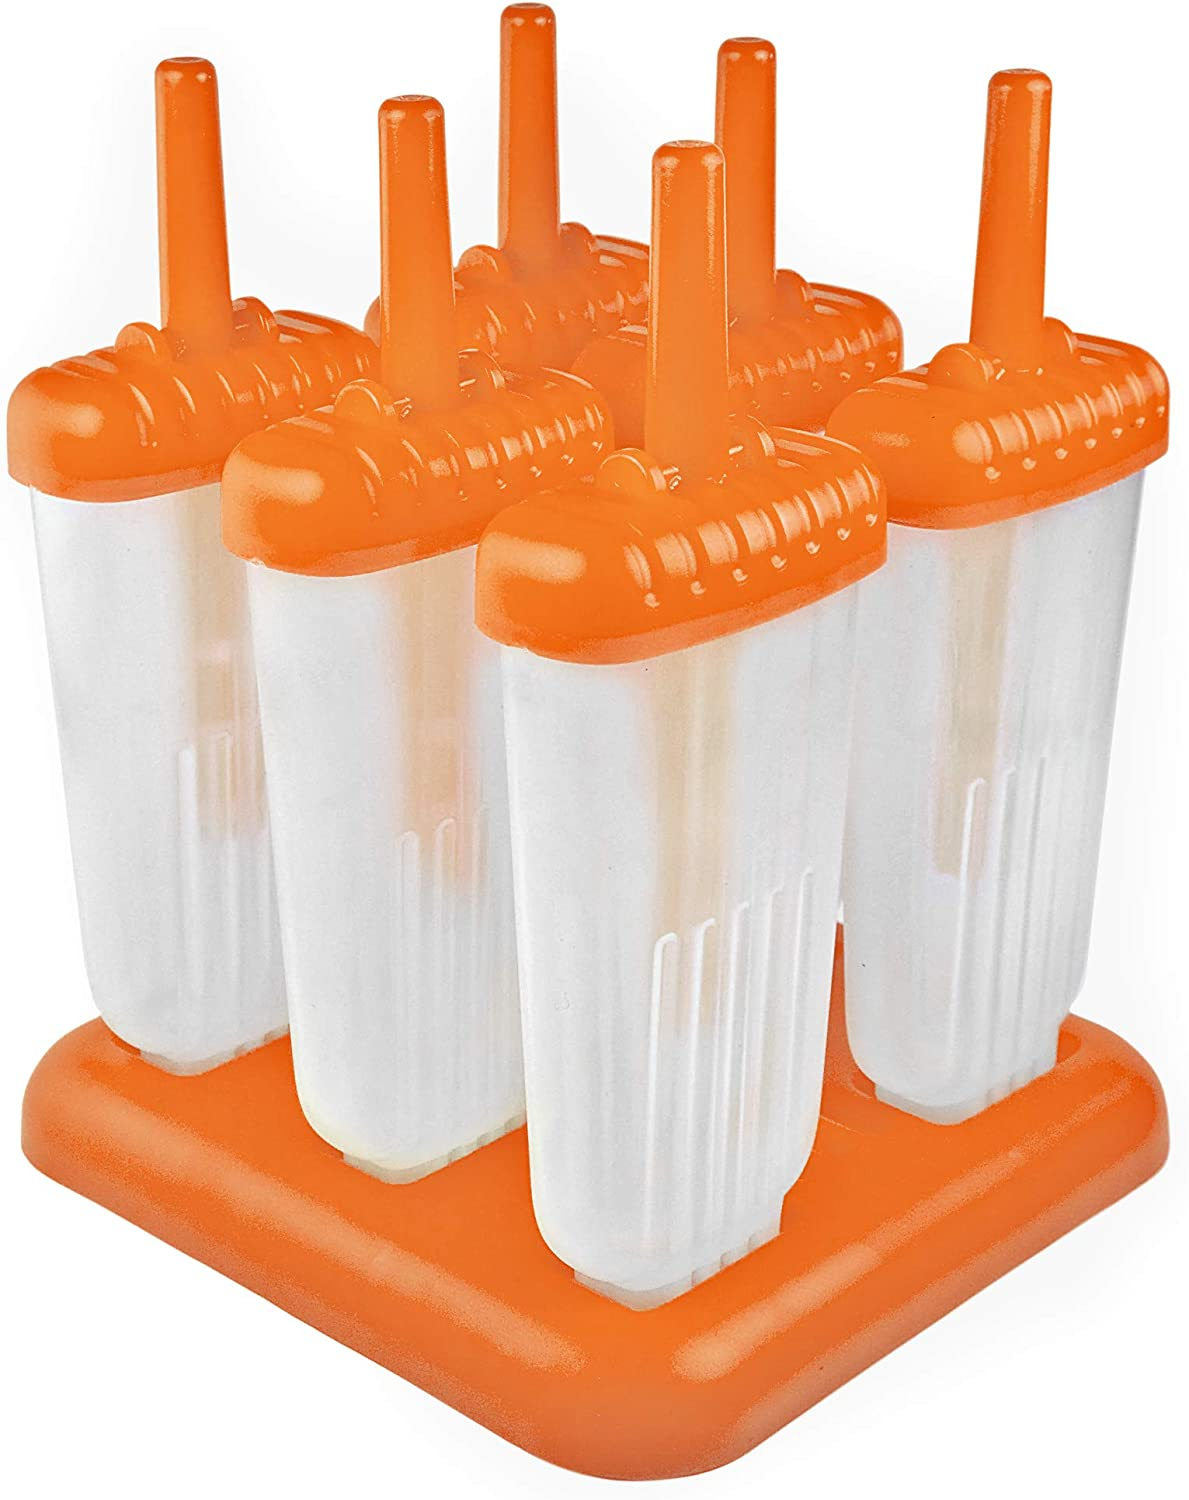 Tovolo Groovy, Drip-Guard Handle 4 Ounce, Set of 6 Ice Pop Molds, Popsicle Makers with Reusable Sticks, Mess-Free Frozen Treats, Orange Peel